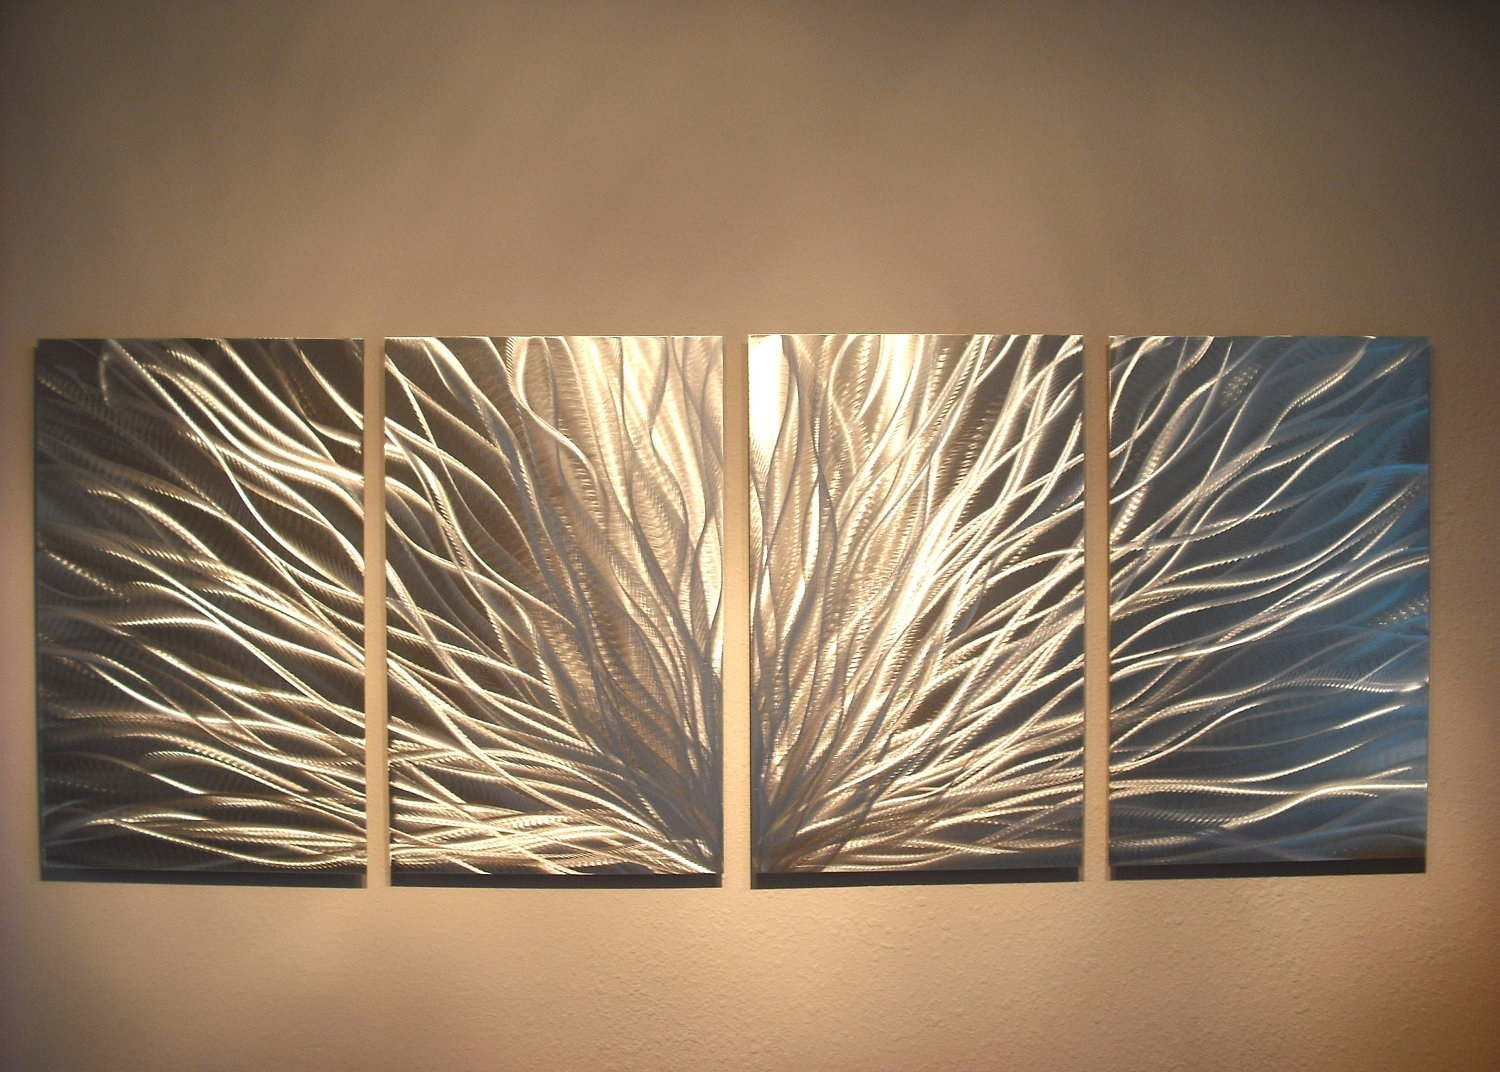 Radiance – Abstract Metal Wall Art Contemporary Modern Decor With Regard To Most Recent Diy Modern Abstract Wall Art (View 14 of 20)